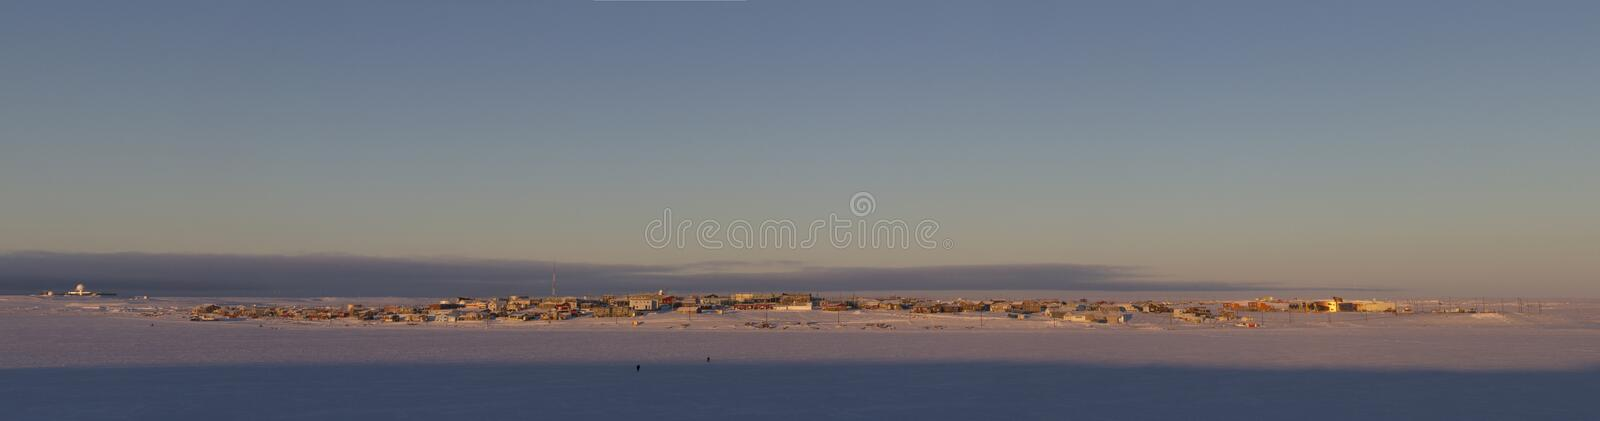 Panoramic view of Cambridge Bay, Nunavut, a far northern arctic community, during an early morning sunrise stock image